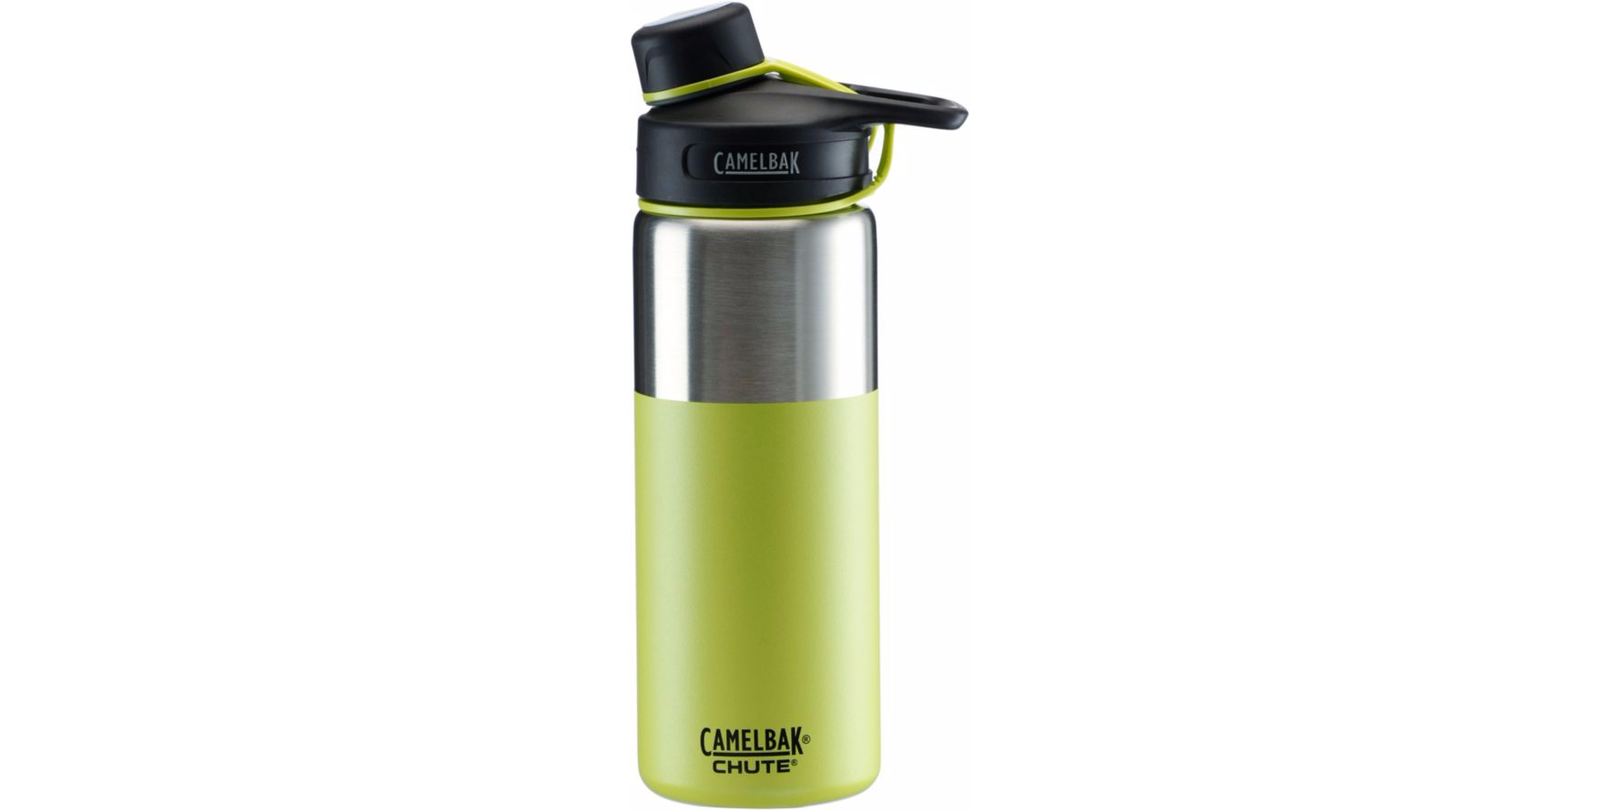 Camelbak Chute Vacuum Thermosflasche 1,2L Lime Edelstahl Isolationsflasche